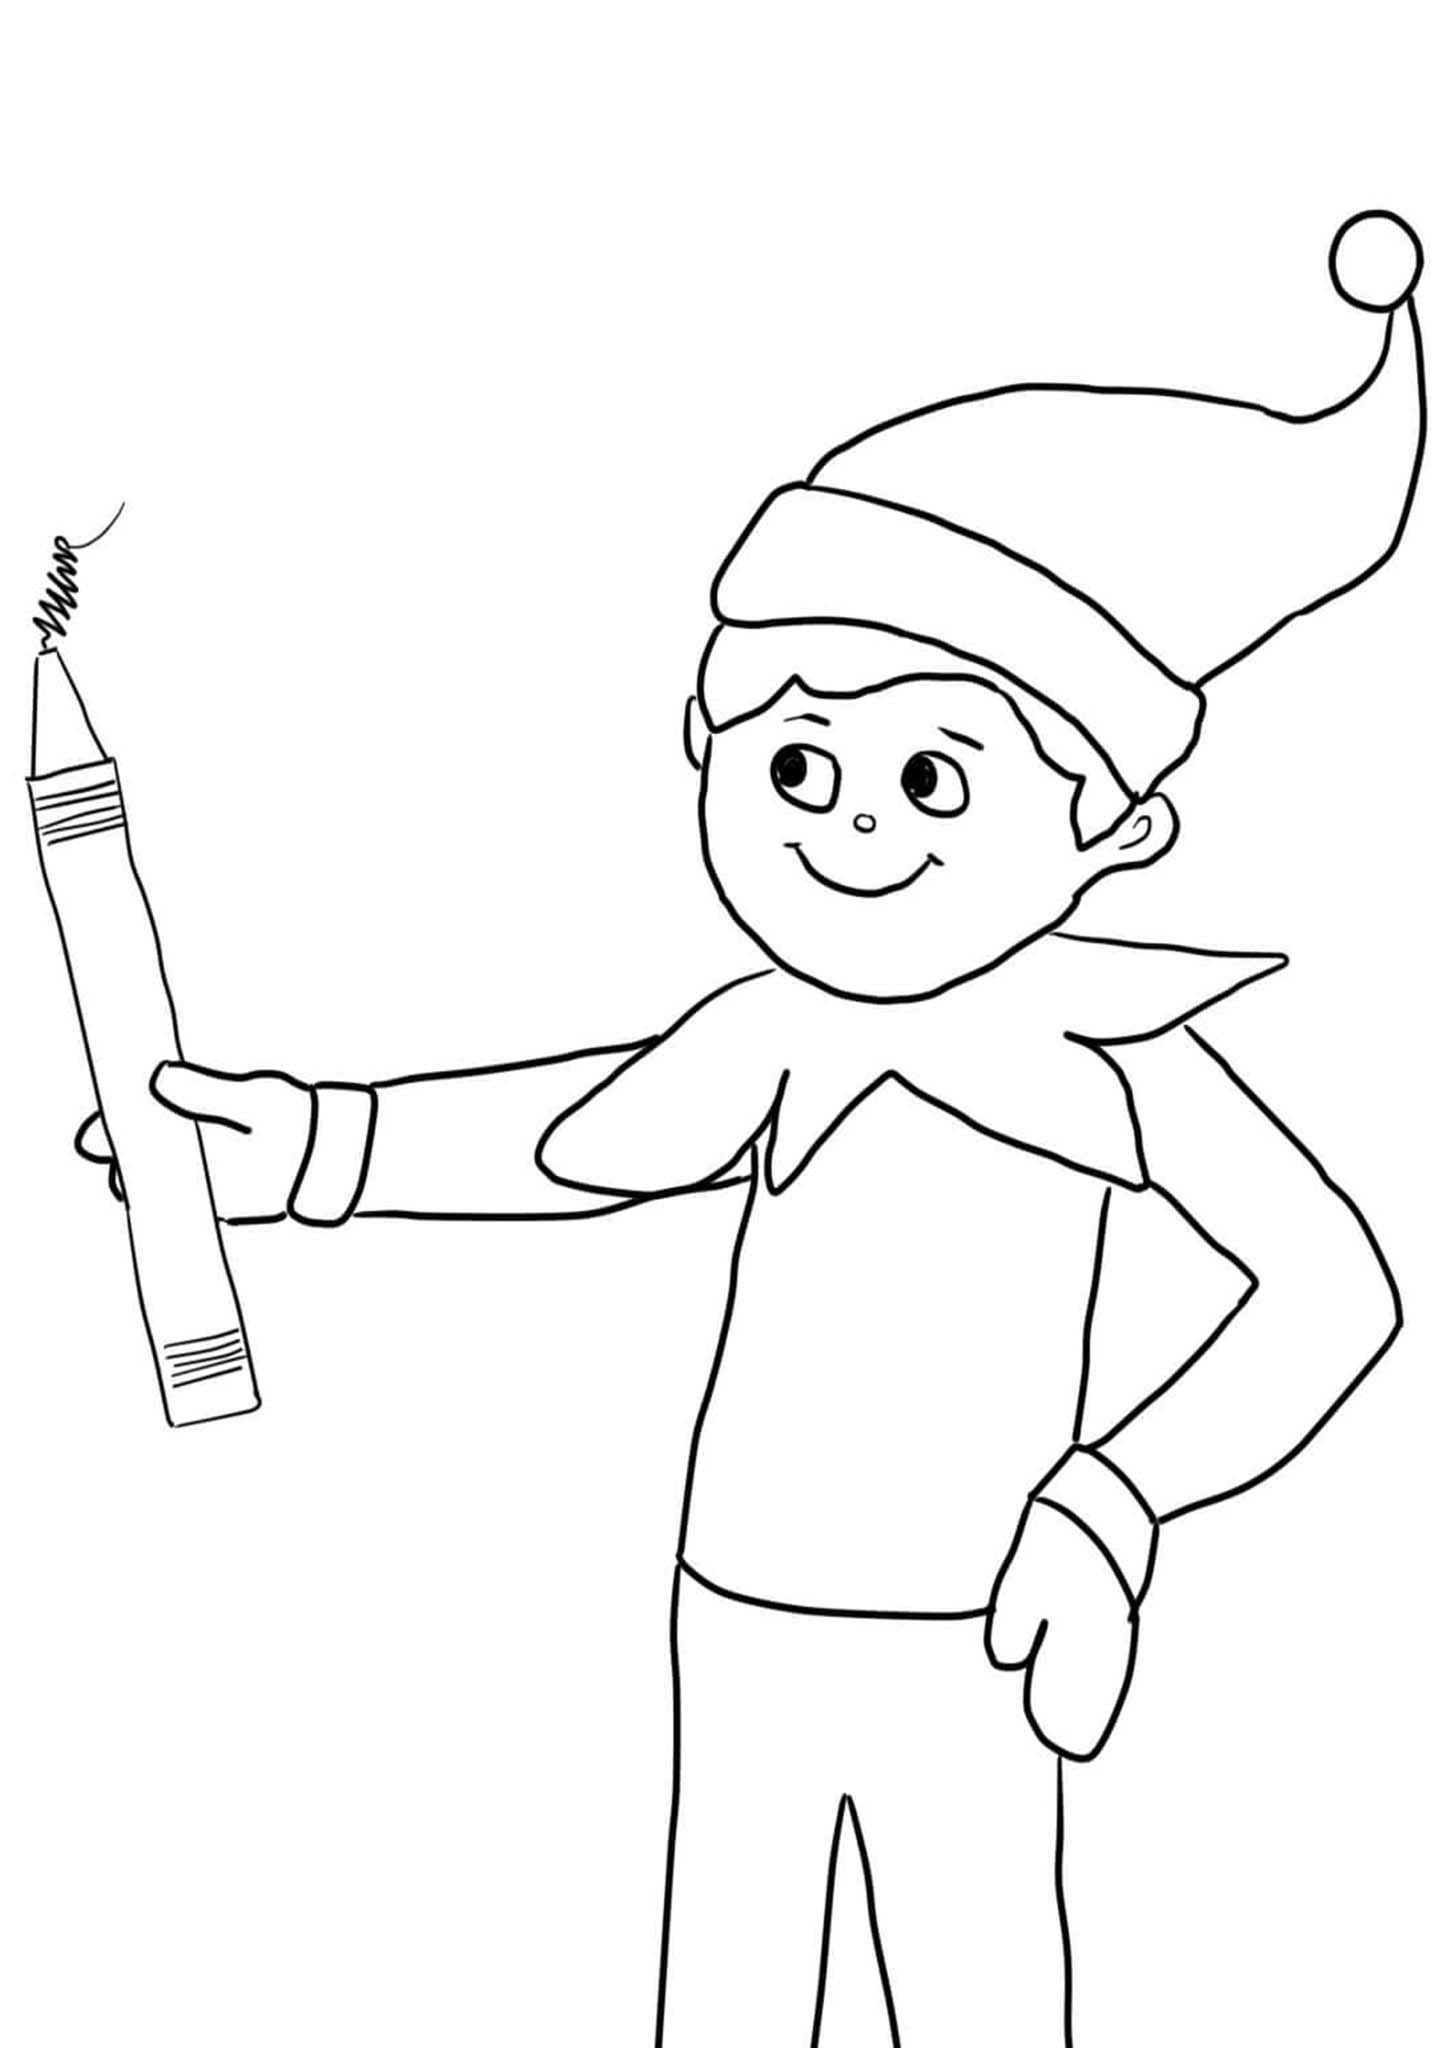 Elf On The Shelf Coloring Page He S Comfy And Cozy In His Holiday Sweats Christmas Coloring Pages Free Christmas Coloring Pages Awesome Elf On The Shelf Ideas